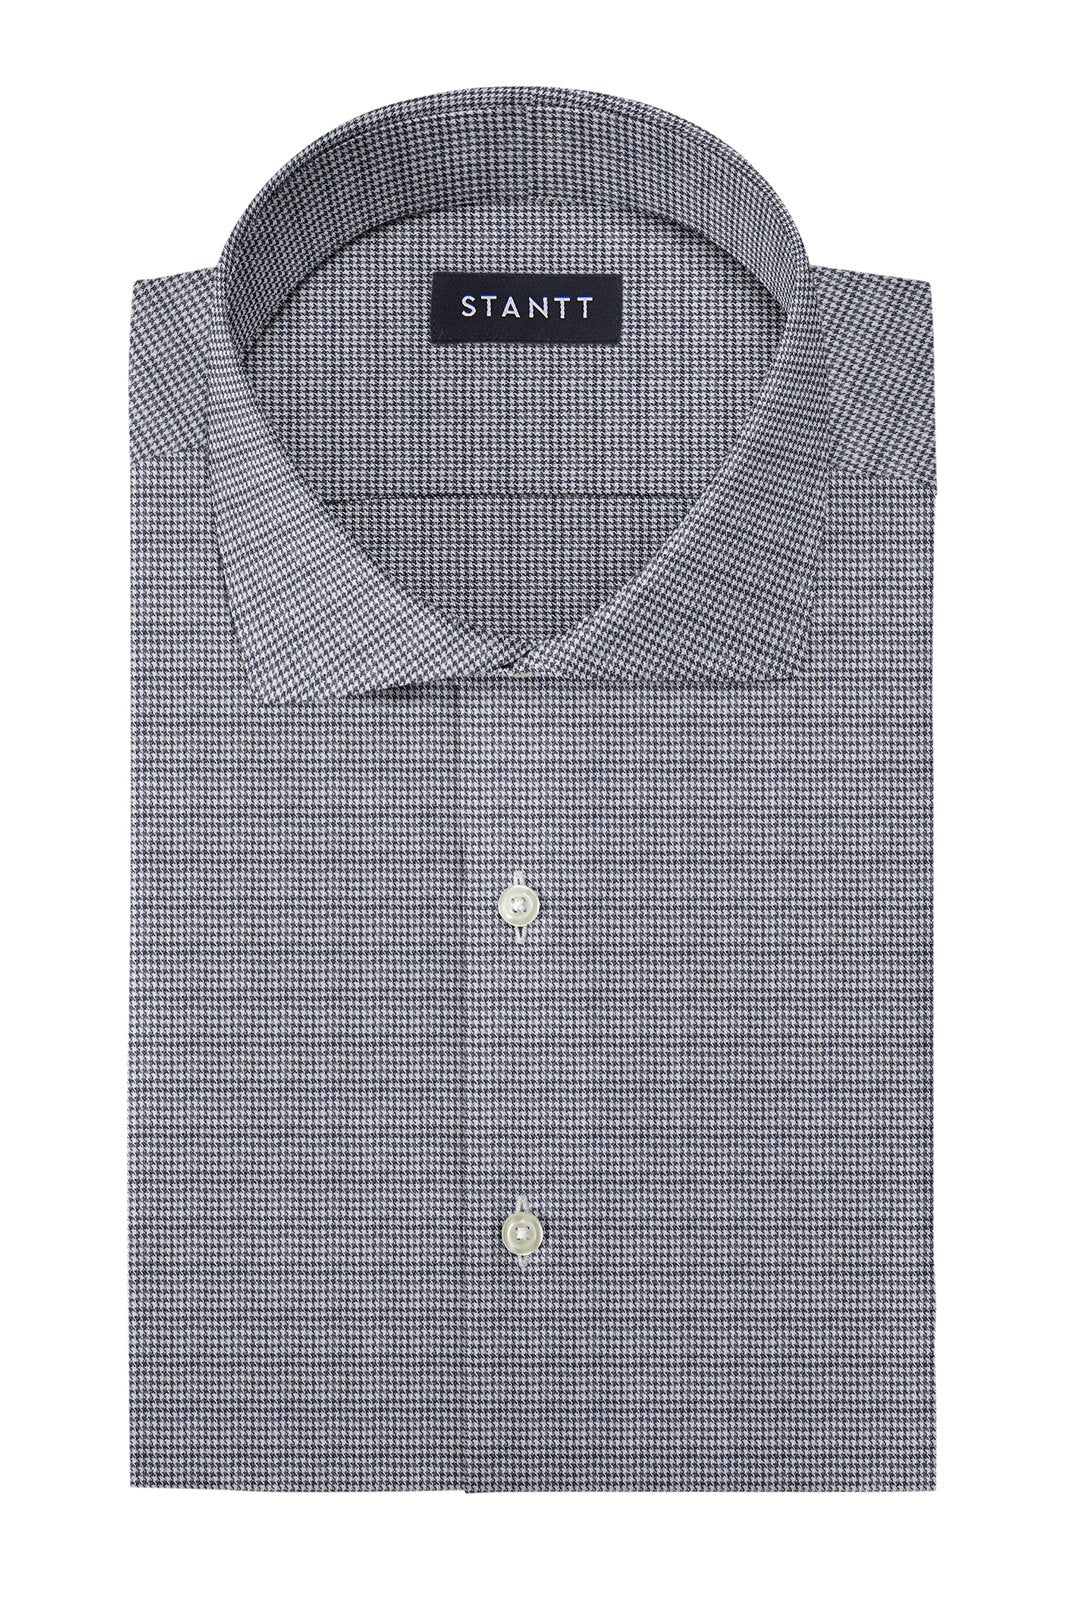 Grey Houndstooth Flannel: Cutaway Collar, Barrel Cuff